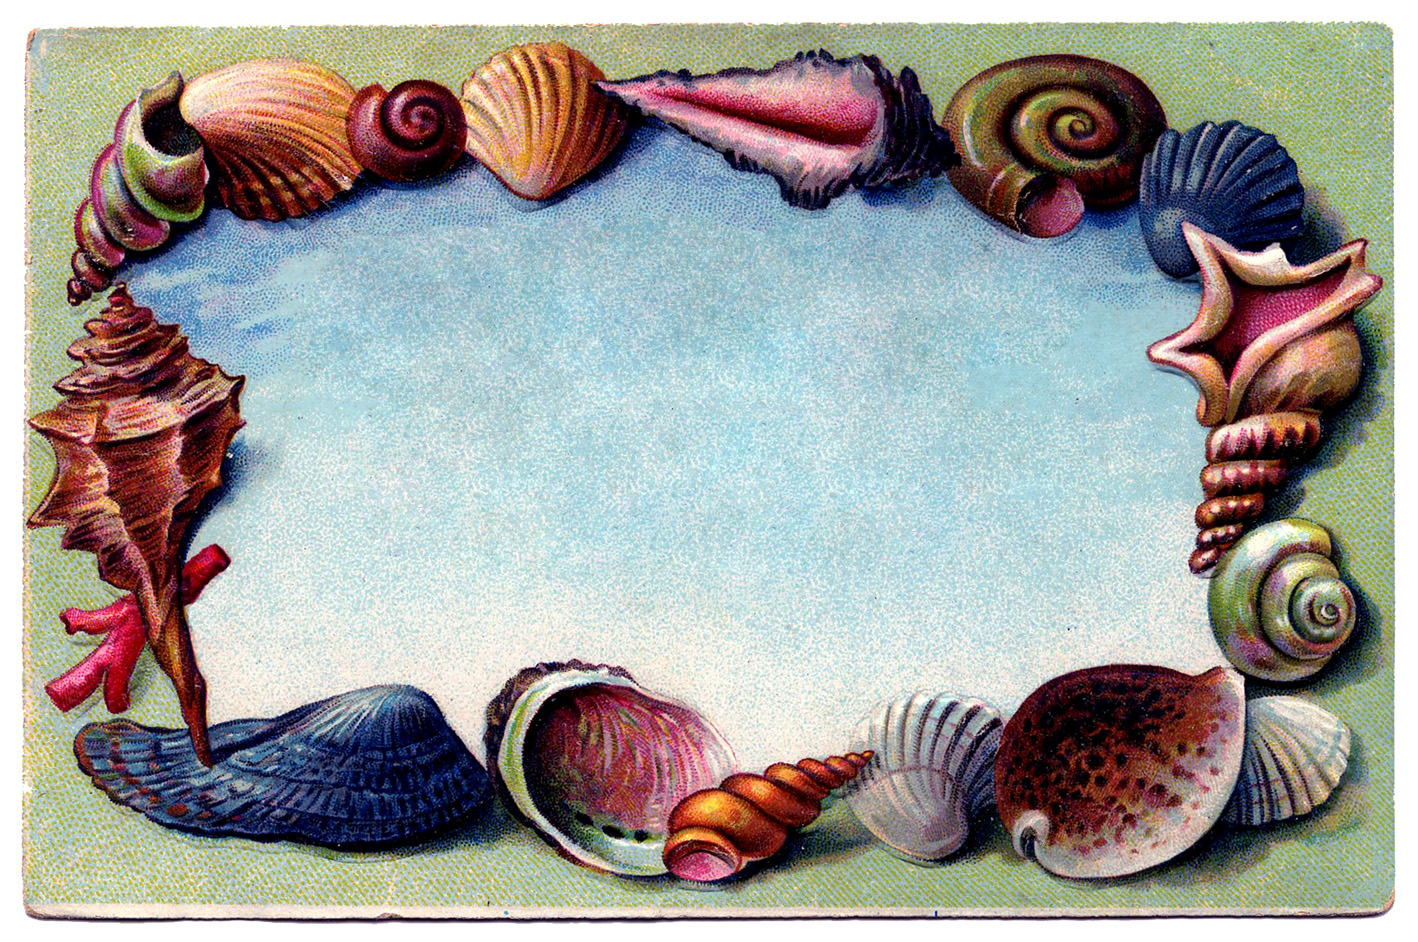 Vintage shell clipart clip art freeuse download Free Wedding Shells Cliparts, Download Free Clip Art, Free ... clip art freeuse download